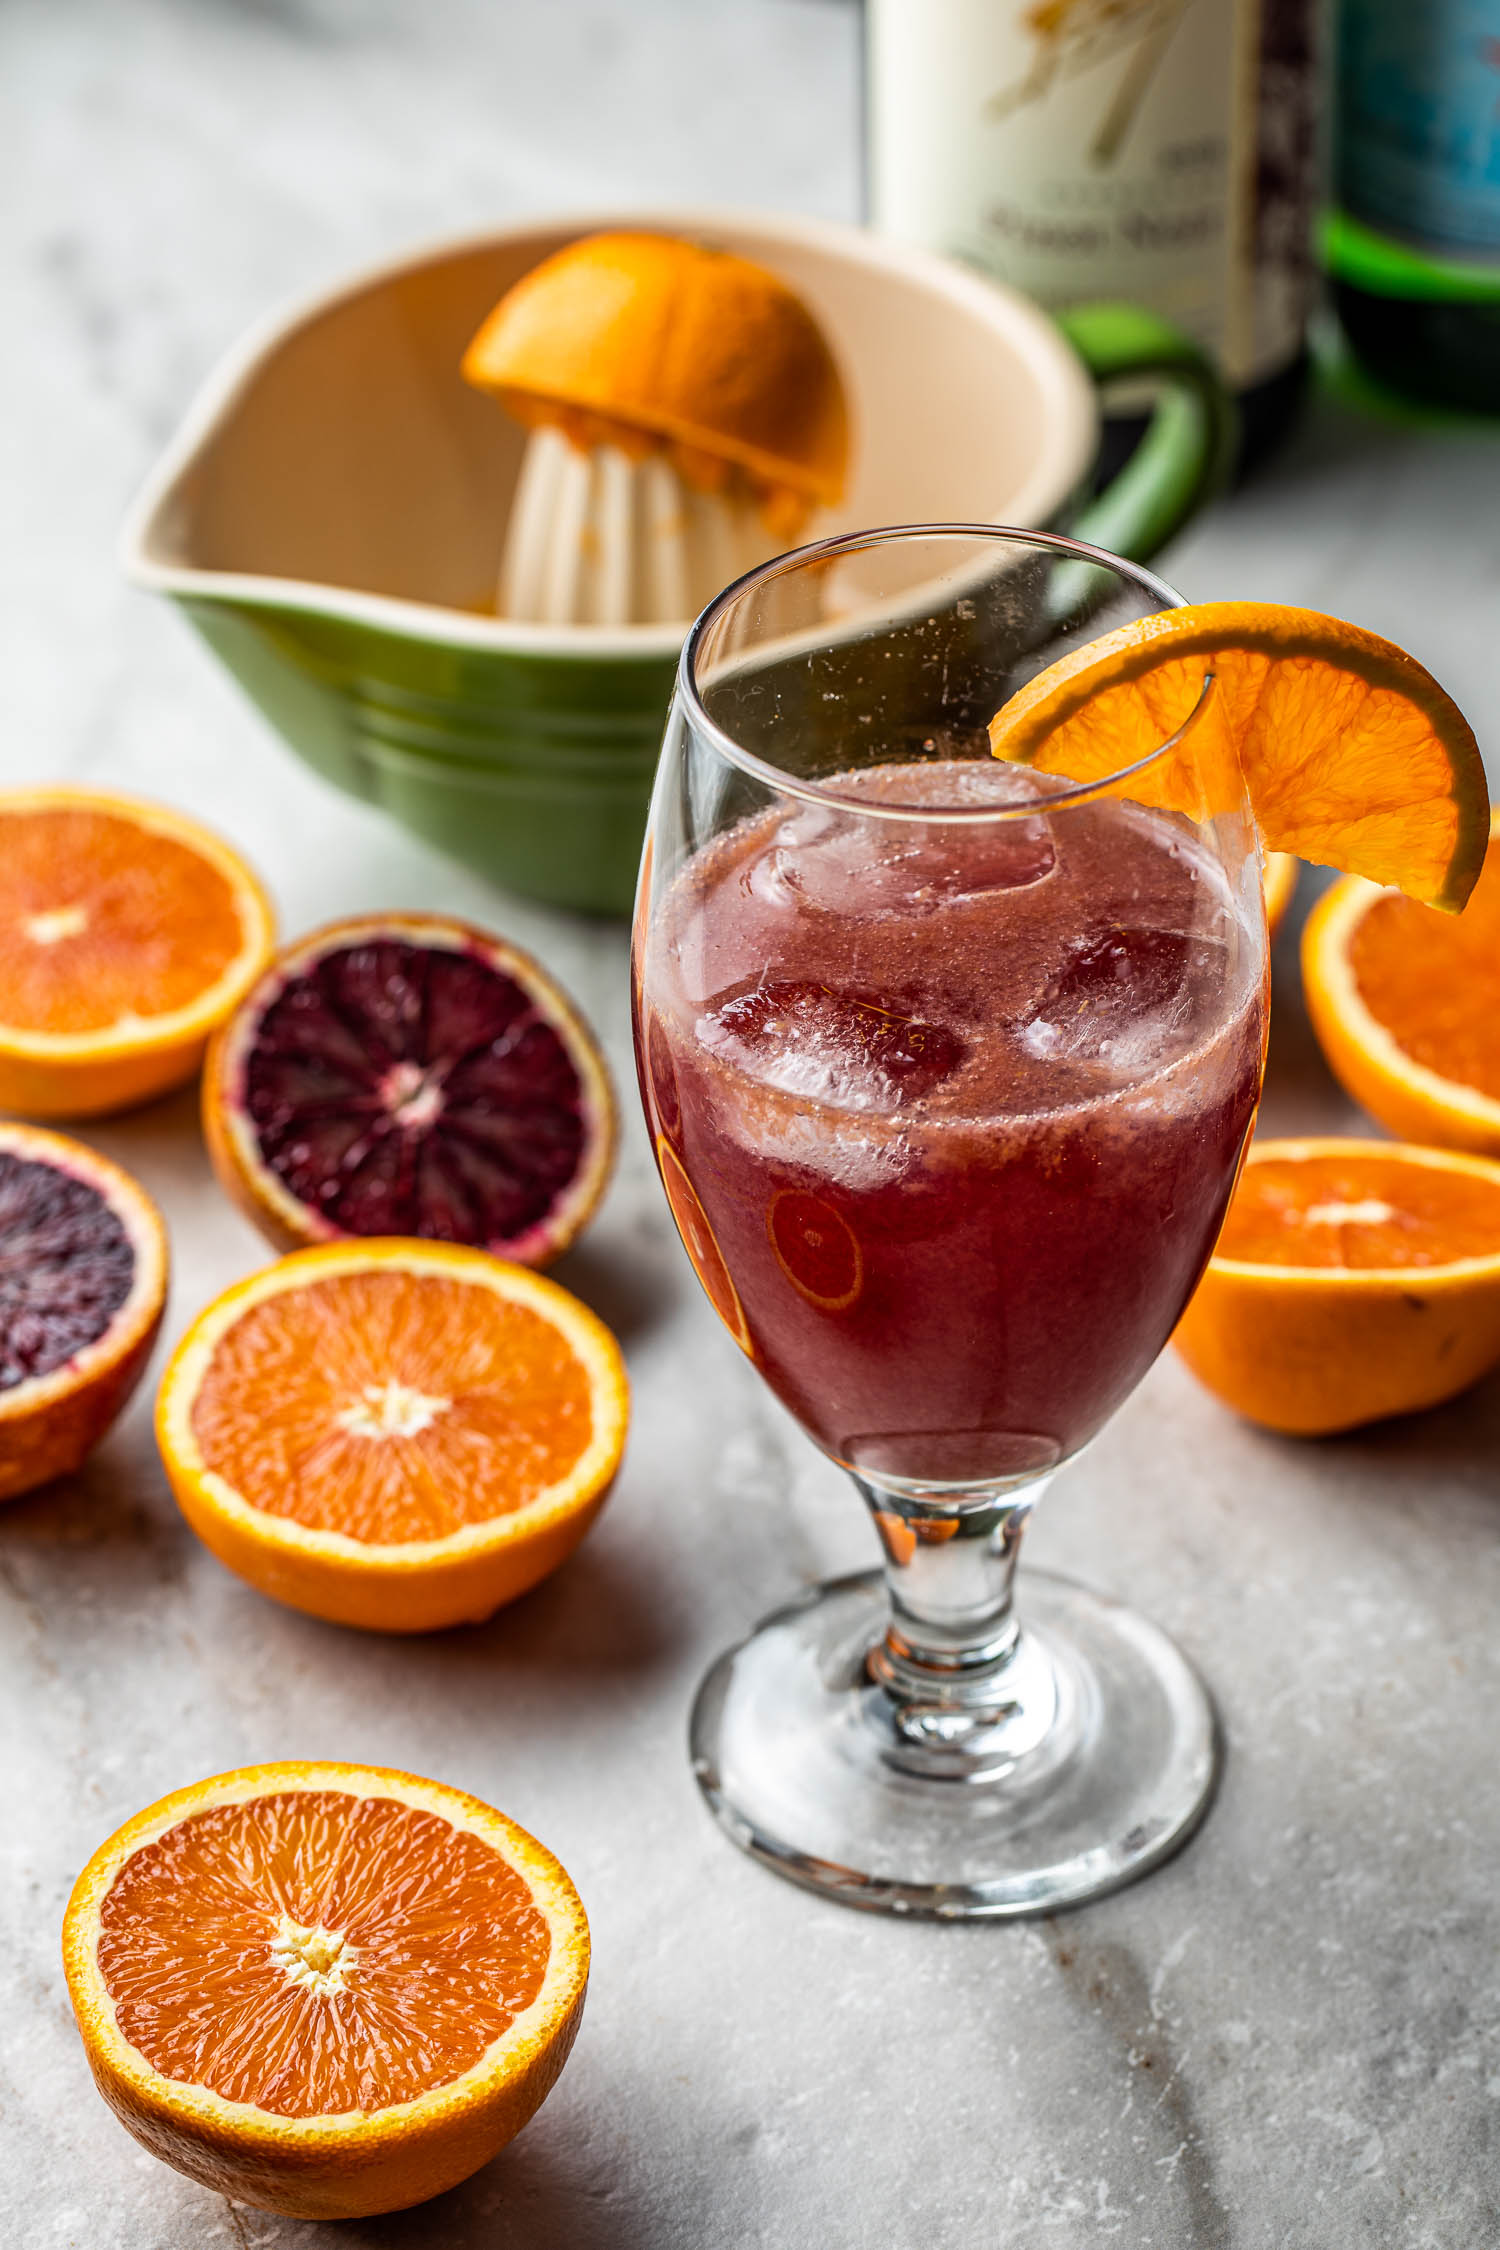 oranges being juiced for a skinny wine spritzer mixed drink